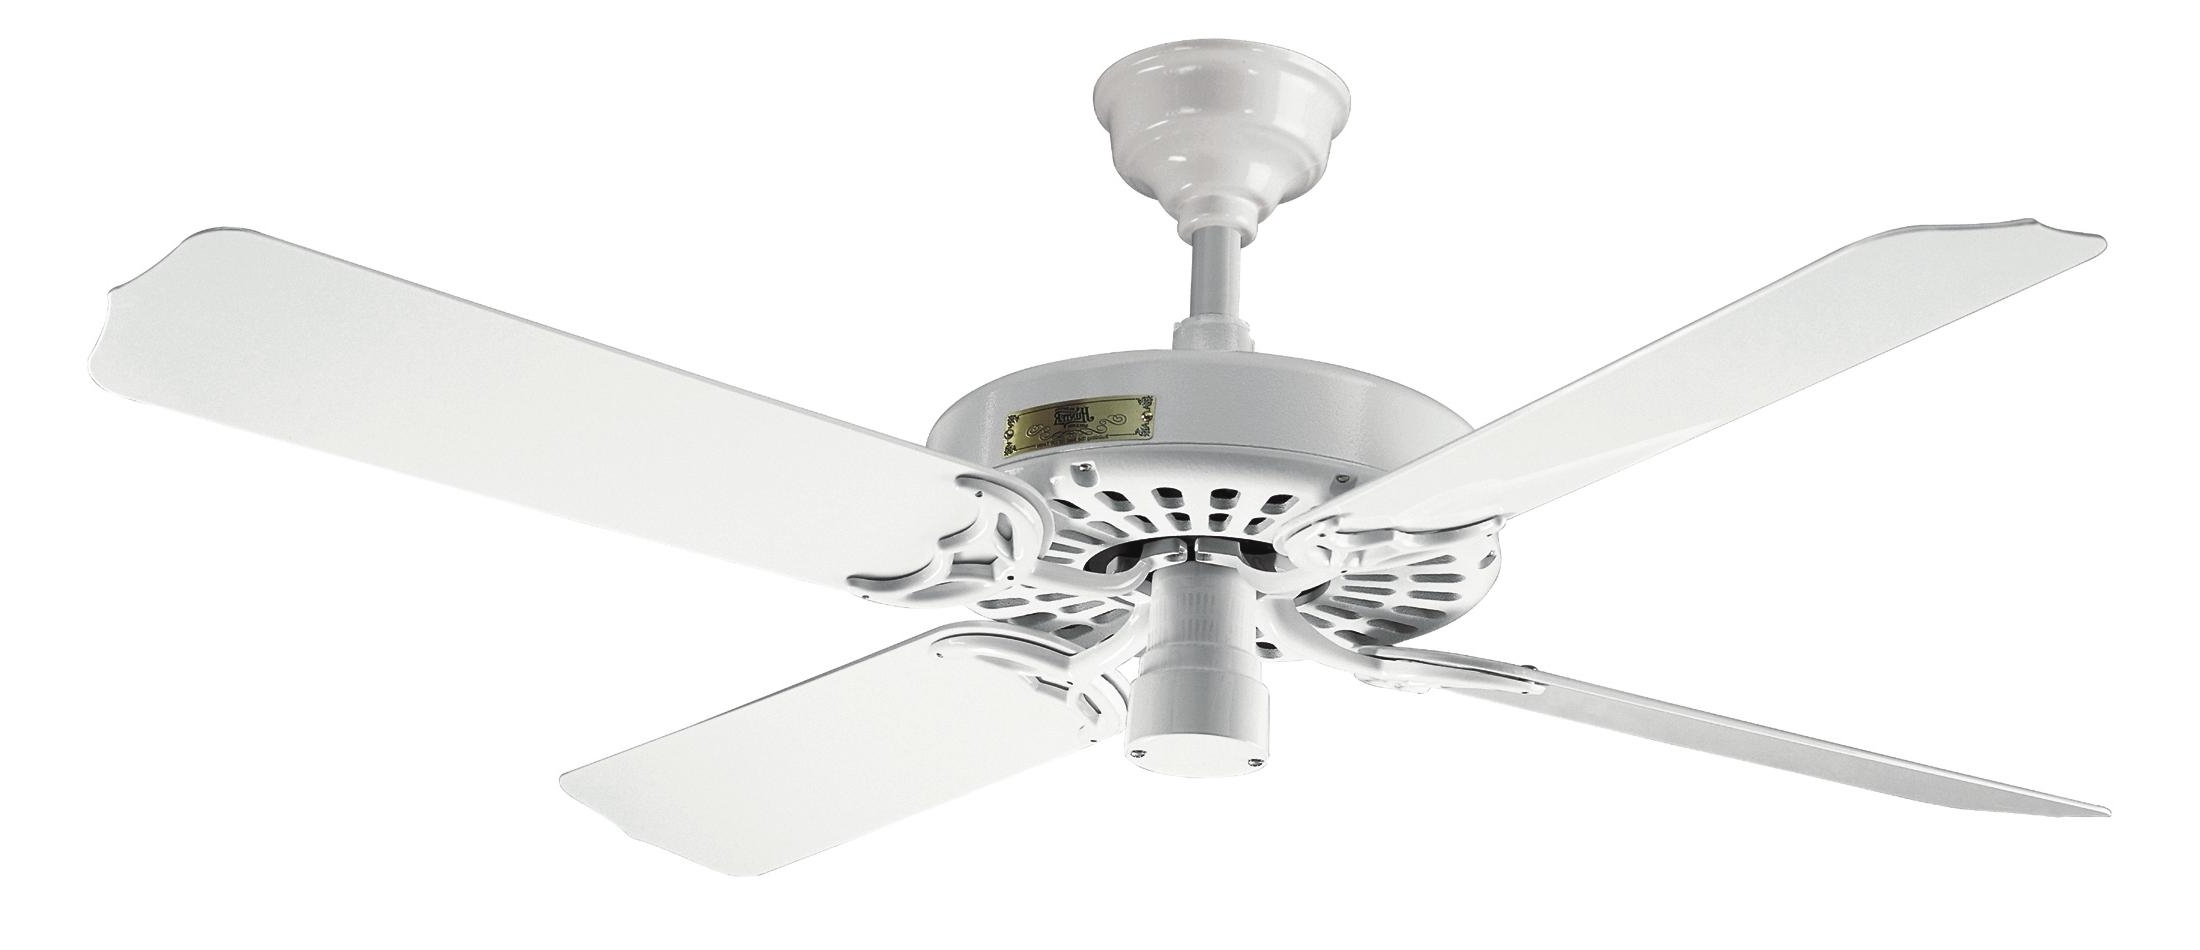 Popular Hunter Outdoor Original White Ceiling Fan 25602 In White, Best For White Outdoor Ceiling Fans With Lights (View 12 of 20)